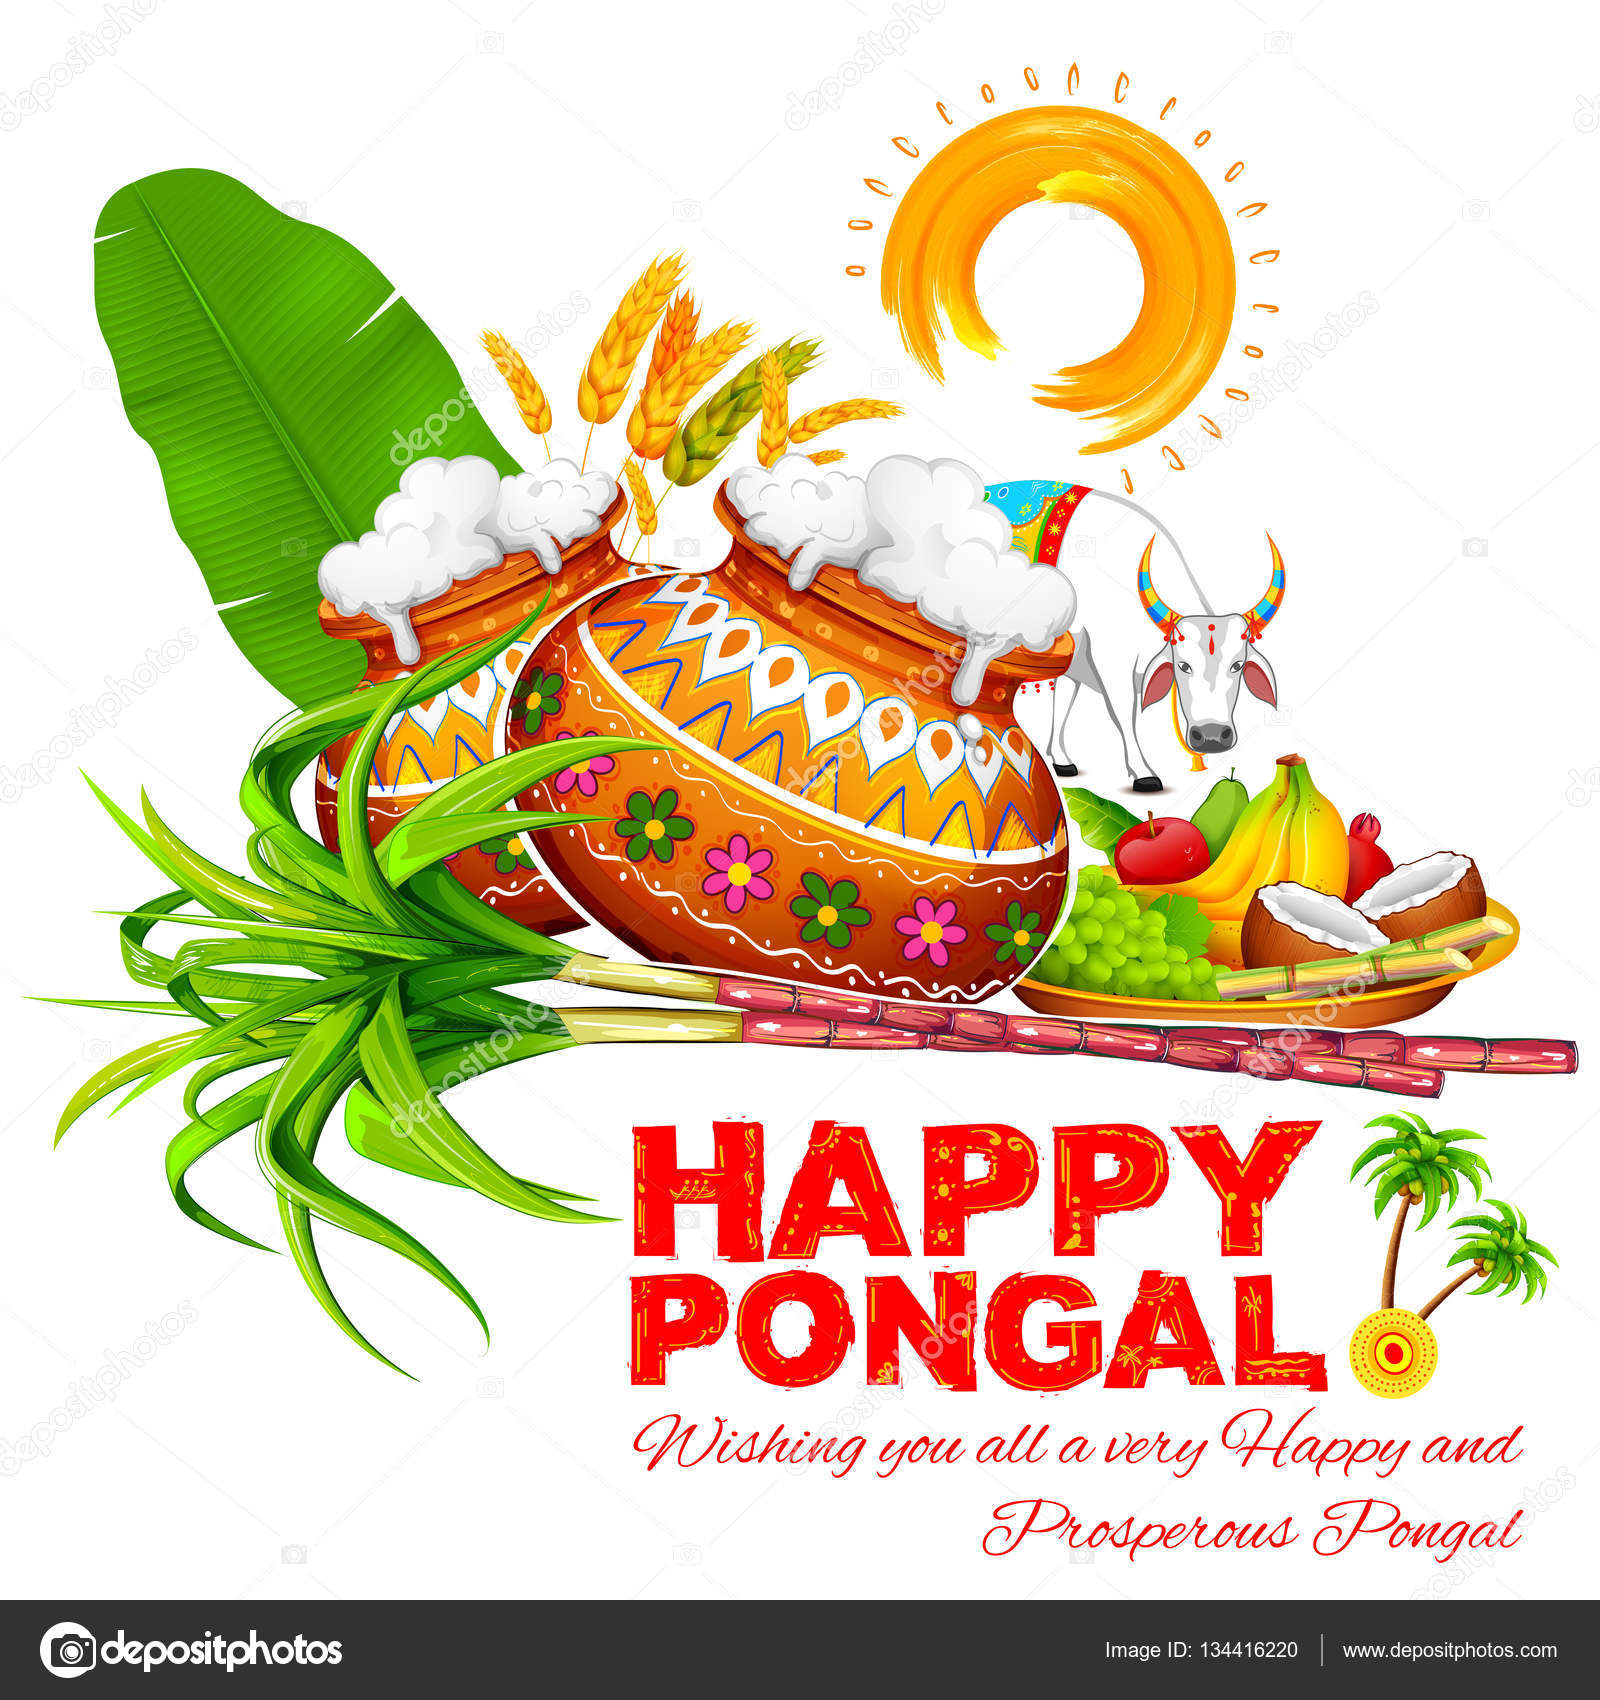 Happy pongal greeting background stock vector vectomart 134416220 happy pongal greeting background stock vector m4hsunfo